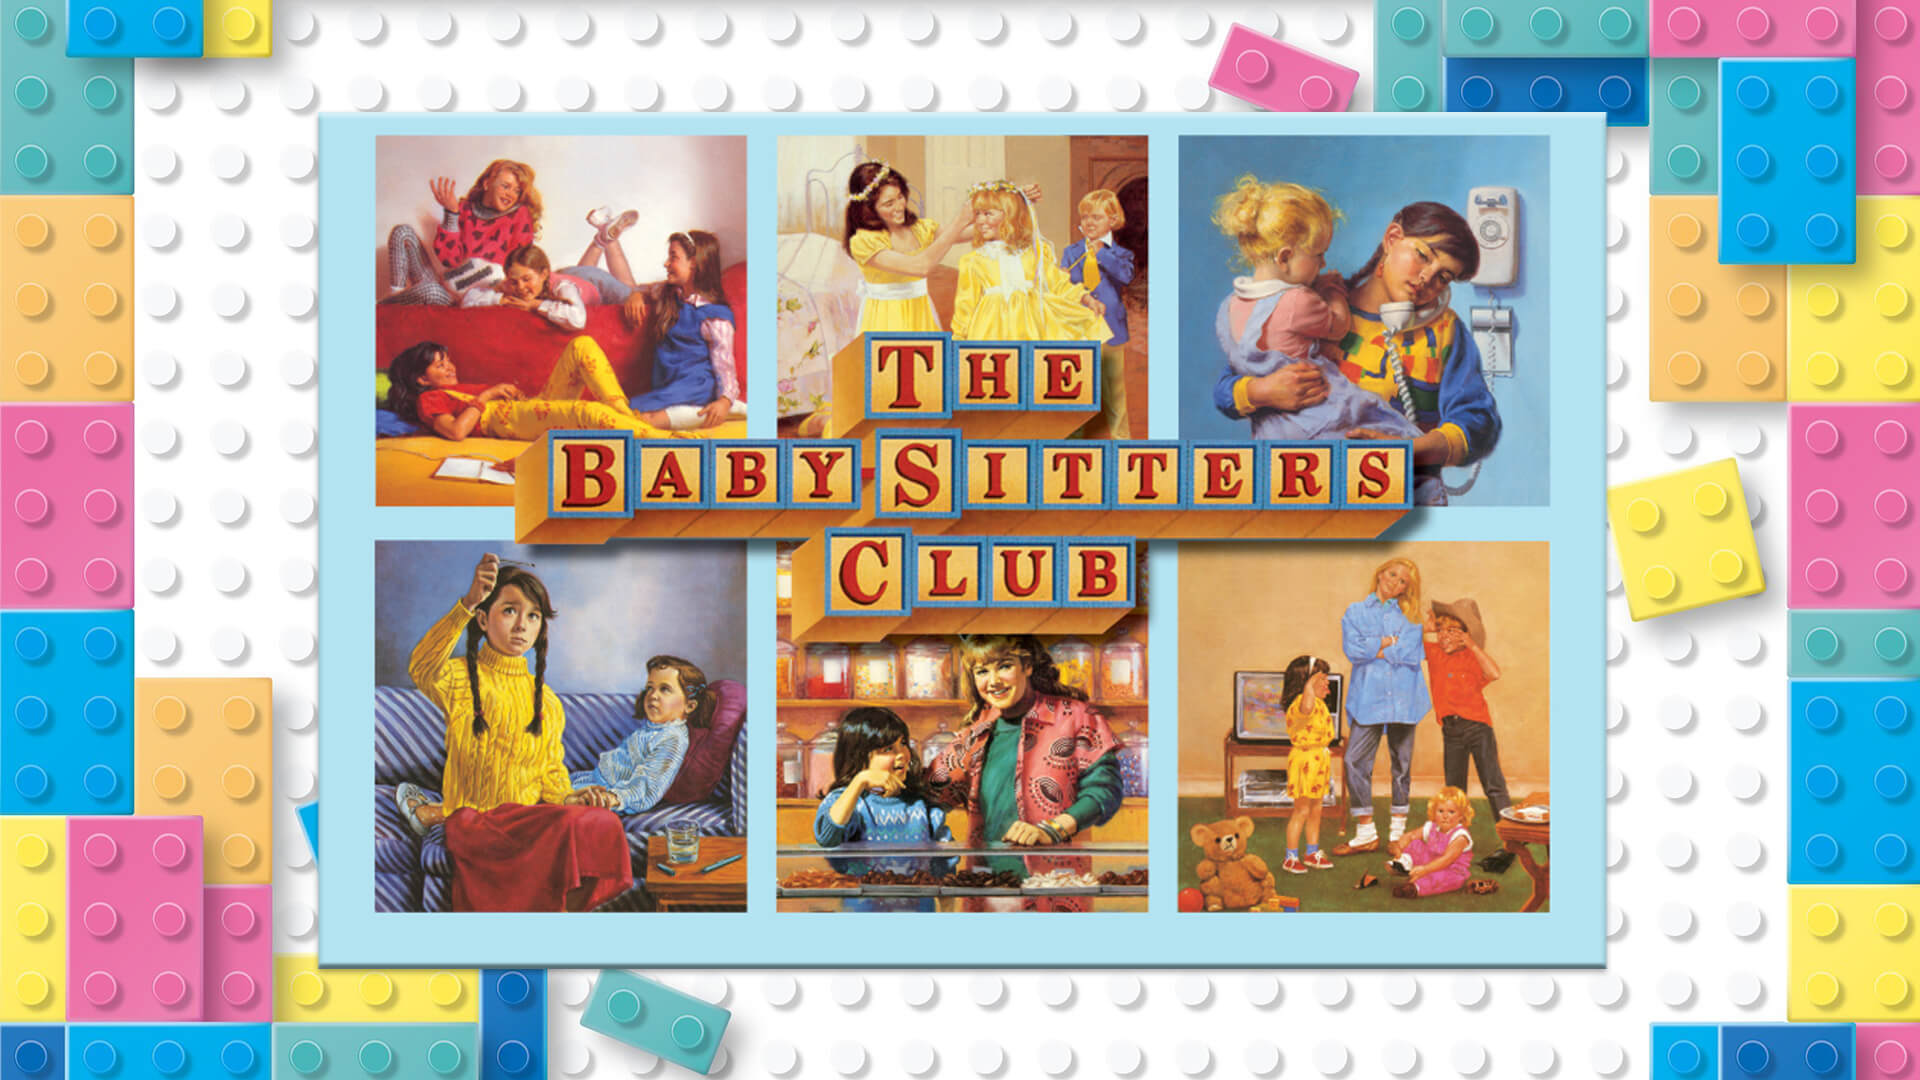 The 'Baby-Sitters Club' Is Returning With a Vegan Twist